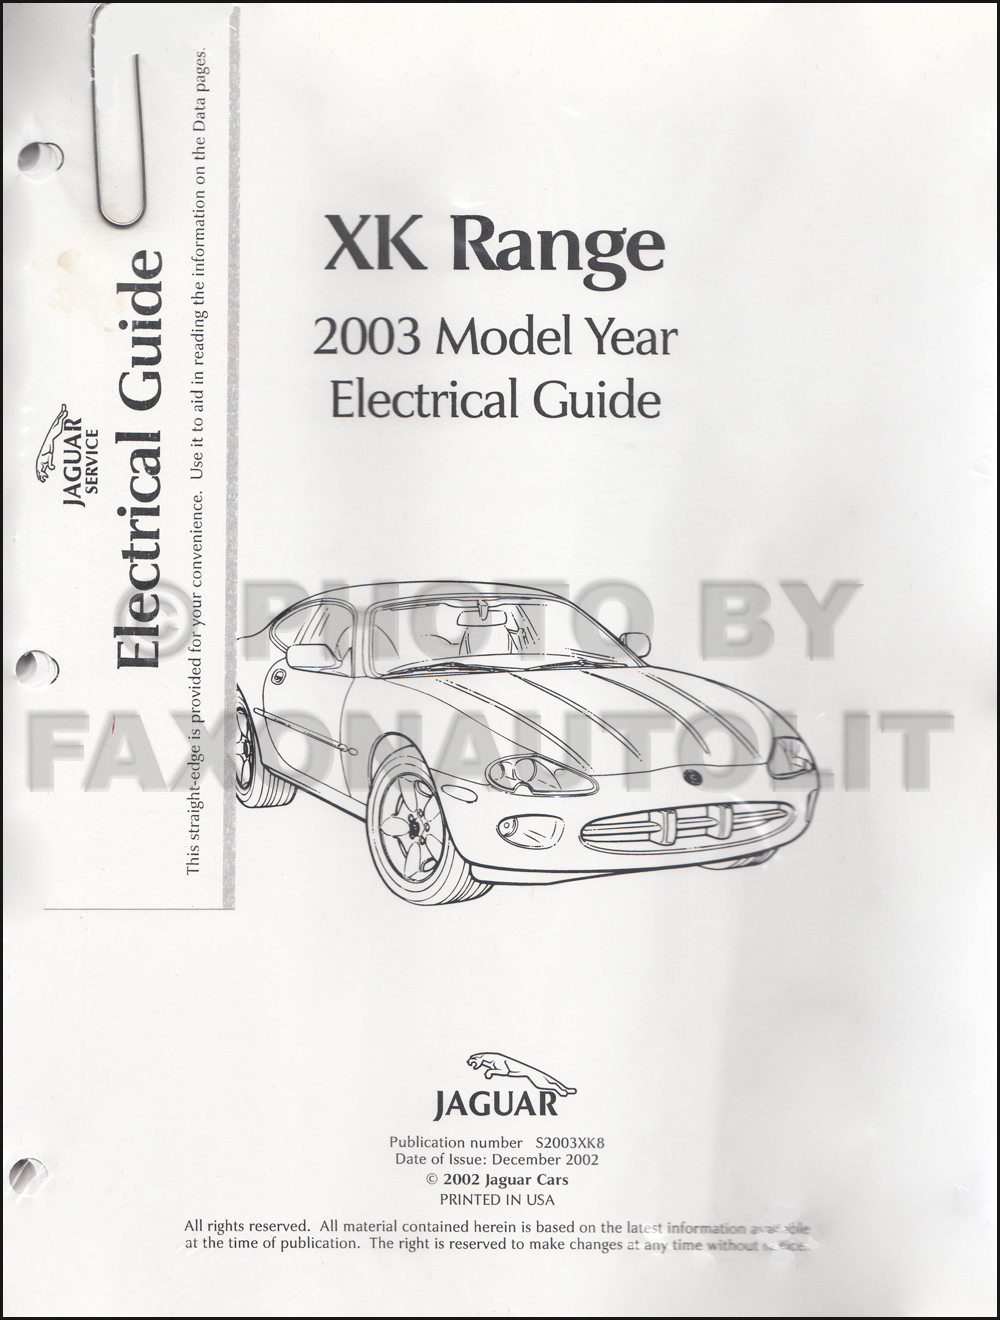 2003JaguarXKRangeOWD Jaguar Xkr Wiring Diagram on jaguar fuel pump diagram, jaguar hardtop convertible, jaguar mark x, jaguar rear end, jaguar electrical diagrams, jaguar exhaust system, jaguar xk8 problems, jaguar r type, jaguar parts diagrams, dish network receiver installation diagrams, jaguar mark 2, 2005 mini cooper parts diagrams, jaguar wagon, jaguar growler, jaguar shooting brake, jaguar gt, jaguar 2 door, jaguar racing green, jaguar e class,